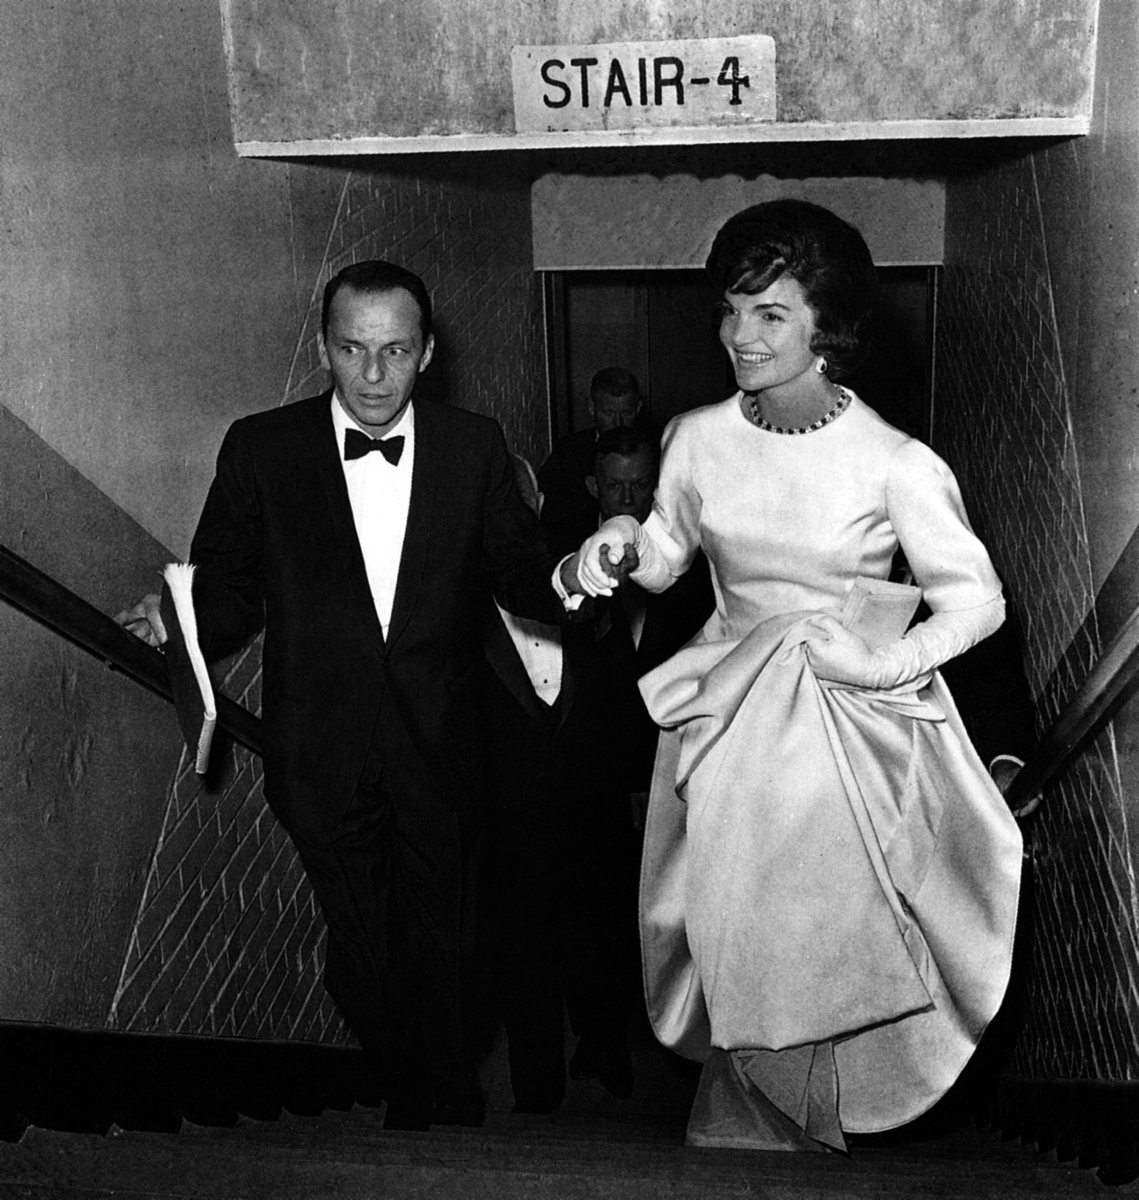 Frank Sinatra escorts Jacqueline Kennedy up the stairs during the inaugural gala at the National Guard Armory in Washington, D.C. on January 19, 1961